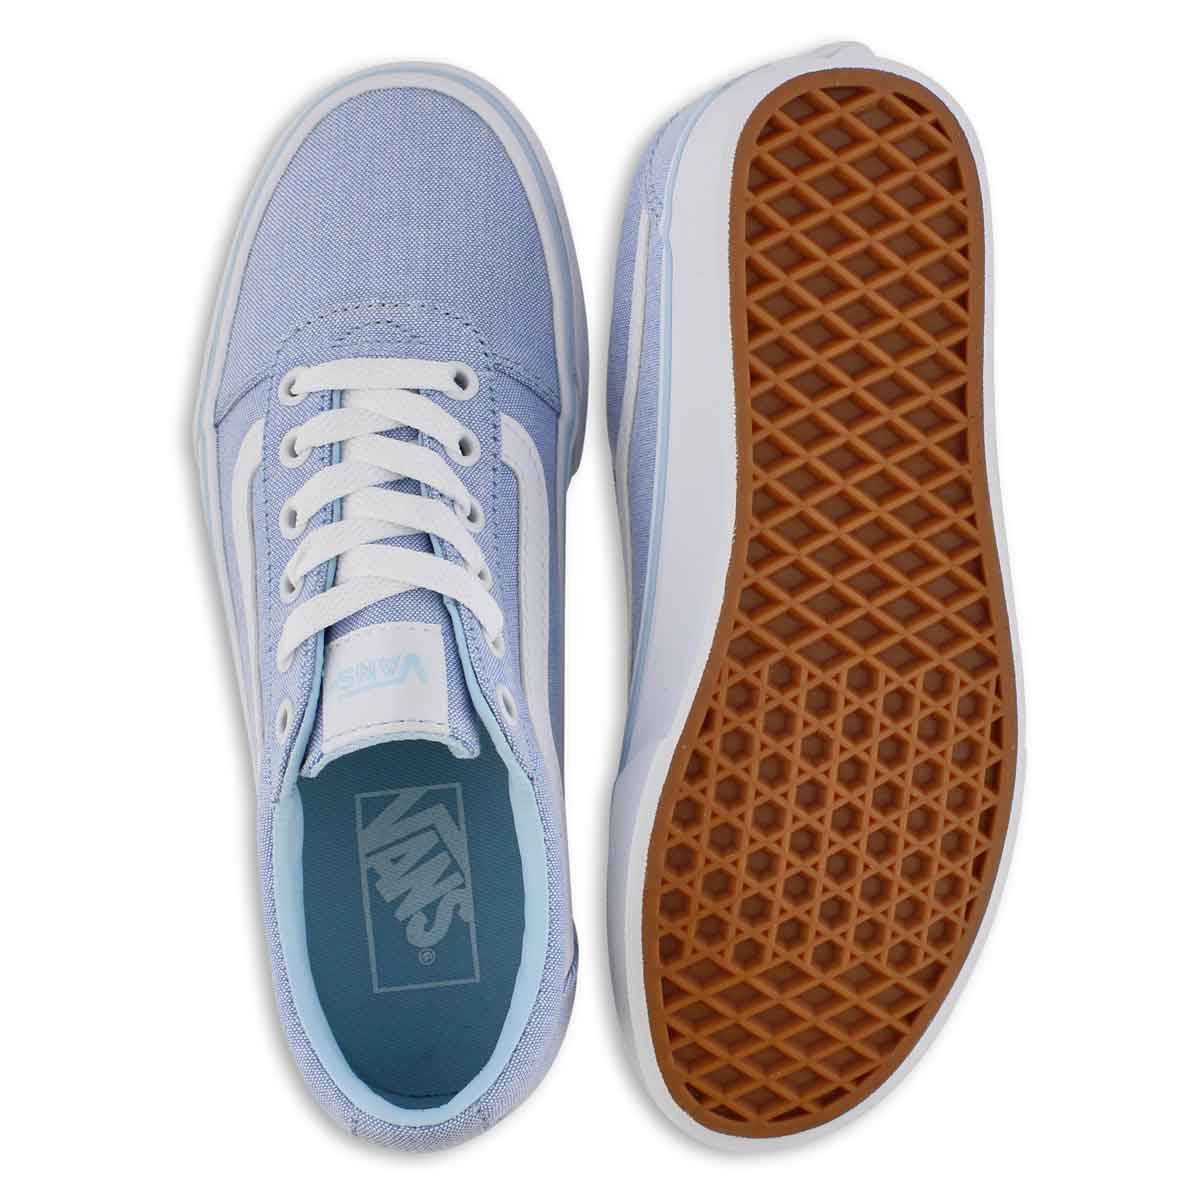 Lds Ward cool blue lace up snkr